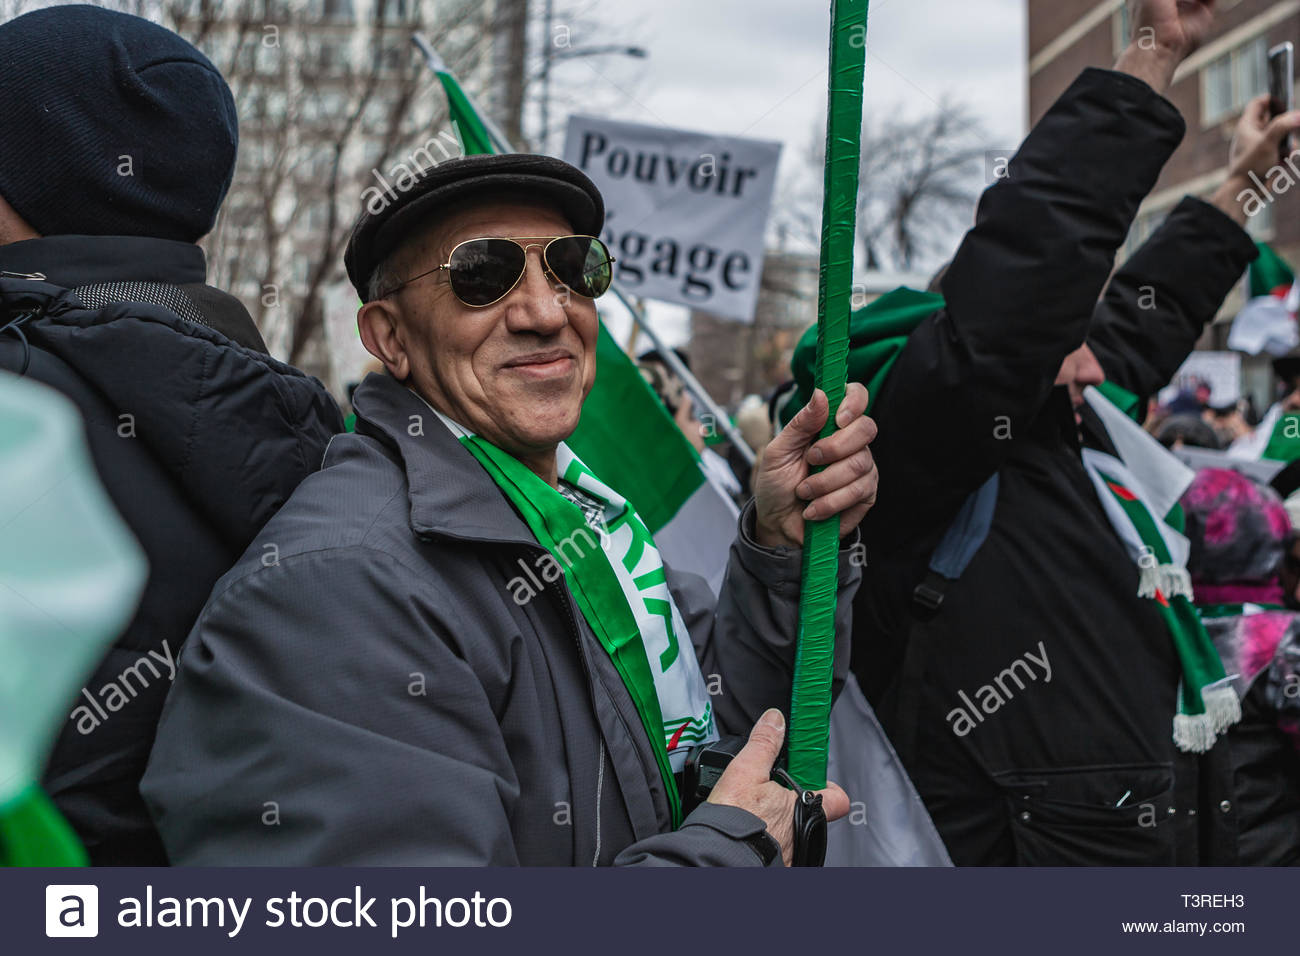 A smiling man, during the demonstration of the Algerian diaspora demanding the departure of President Bouteflika. Montreal, Canada. Montreal (Canada), - Stock Image